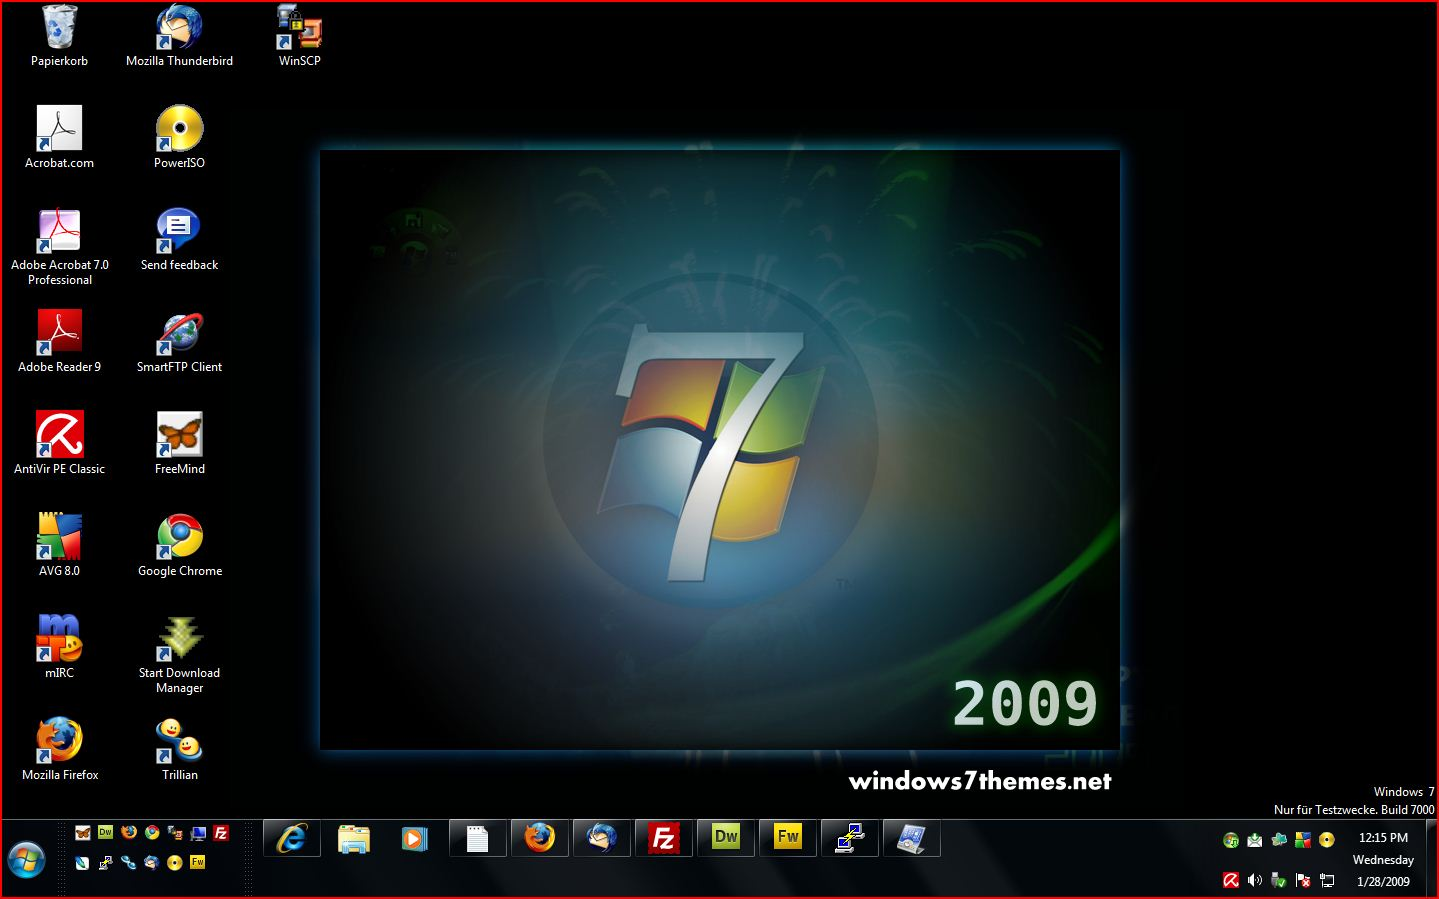 Windows 7 background themes - SF Wallpaper